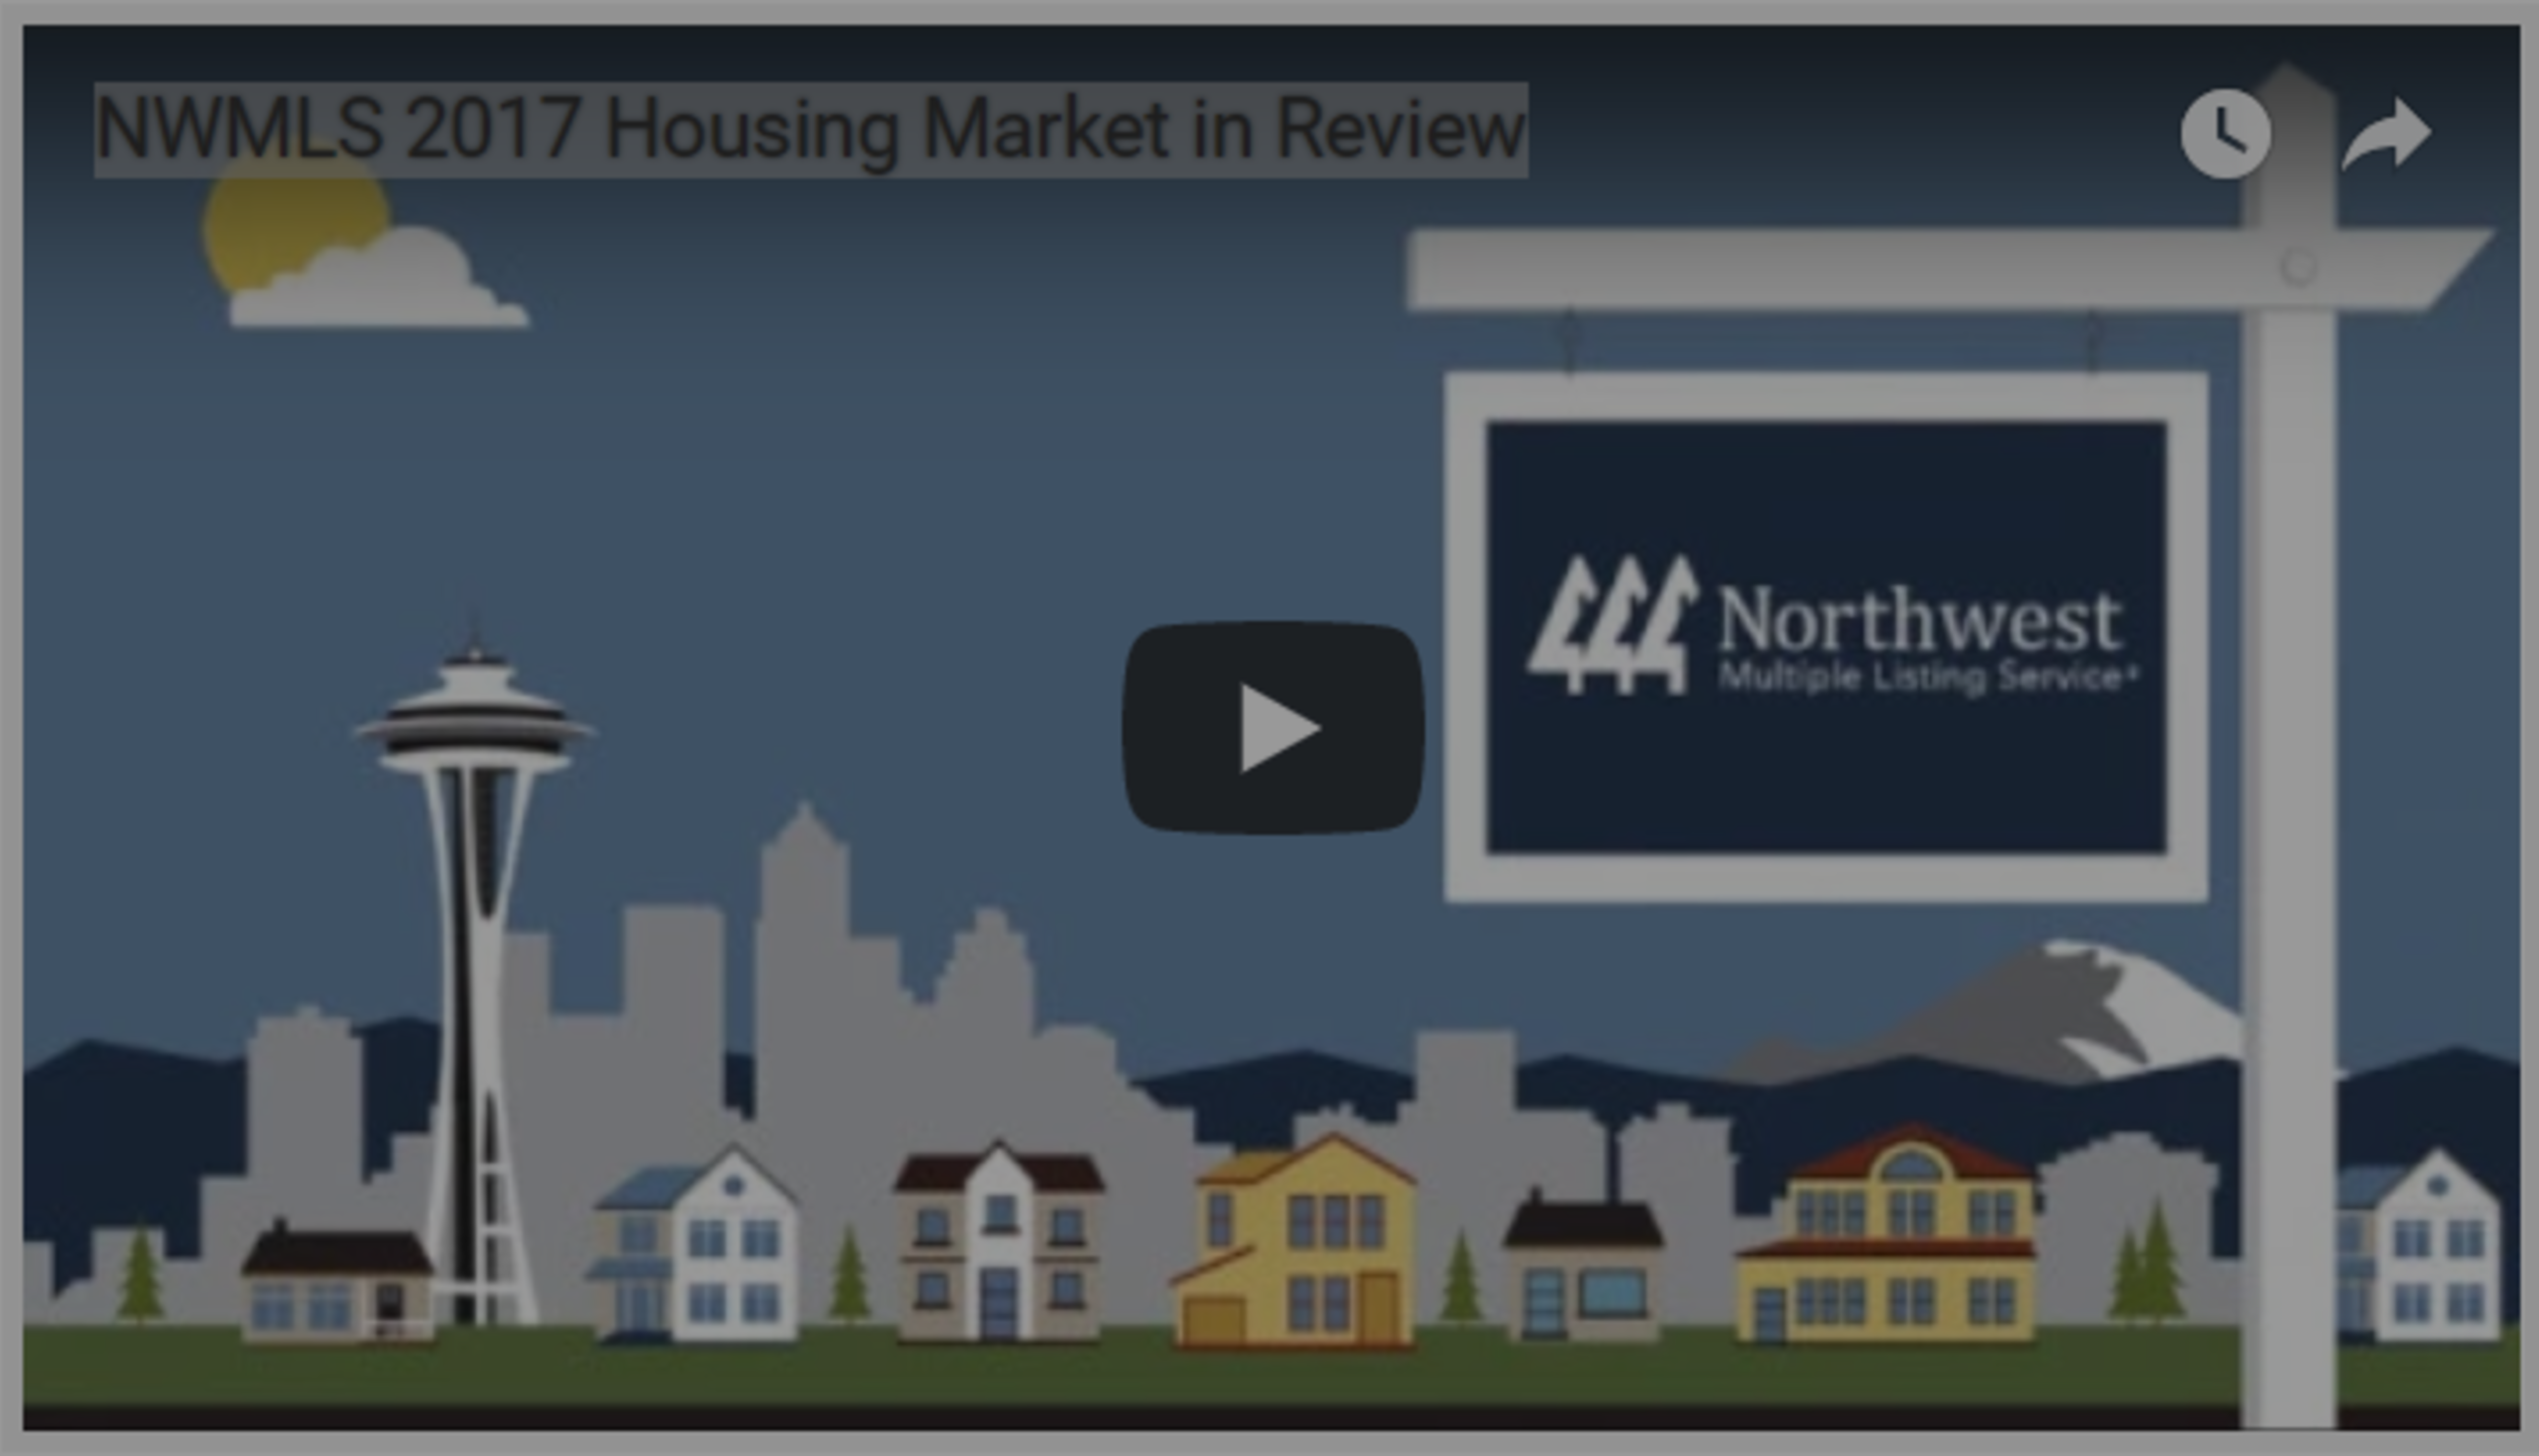 The Wrap Up of the Greater Seattle Real Estate Market 2017